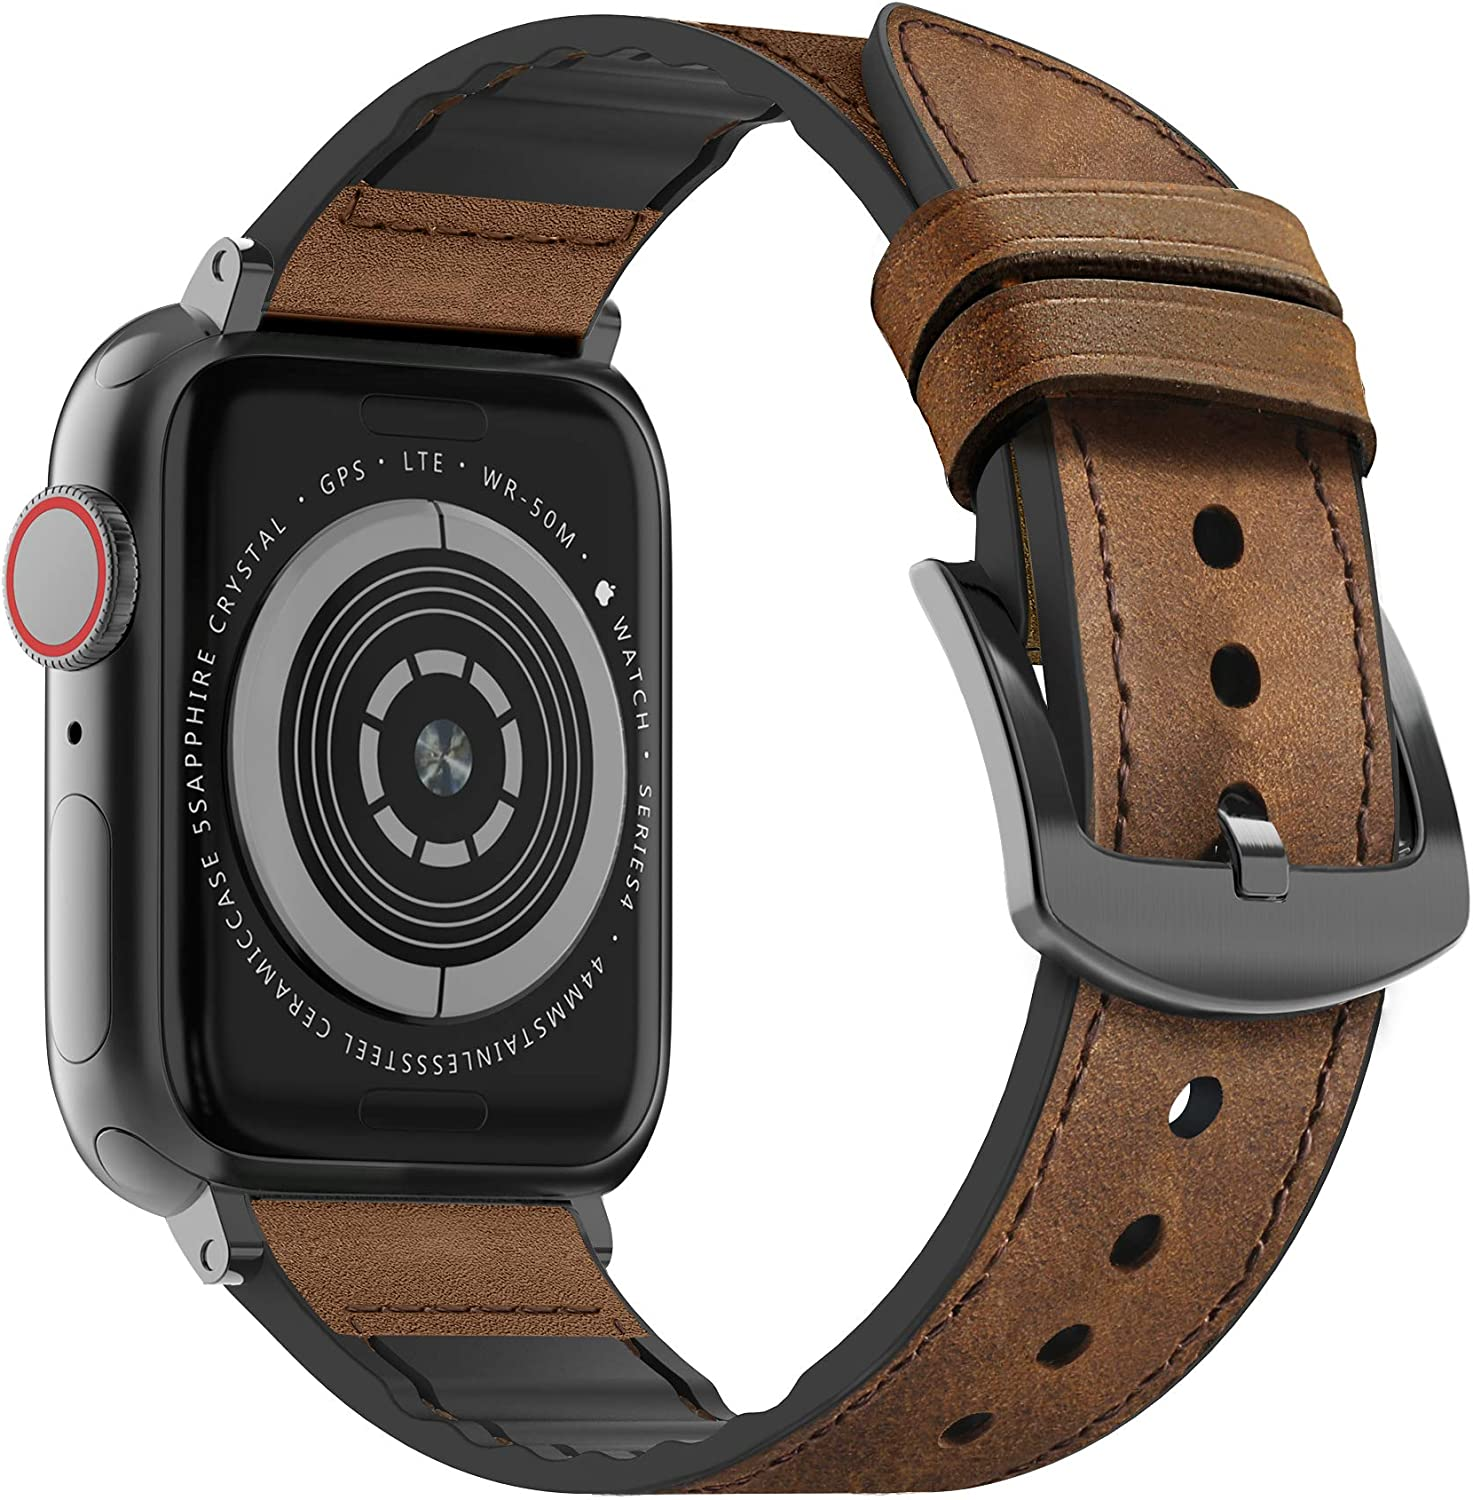 MARGE PLUS Compatible Apple Watch Band 44mm 42mm, Sweatproof Hybrid Genuine Leather and Silicone Sports Watch Band Replacement for iWatch SE Series 6 5 4 3 2 1, Brown/Space Gray